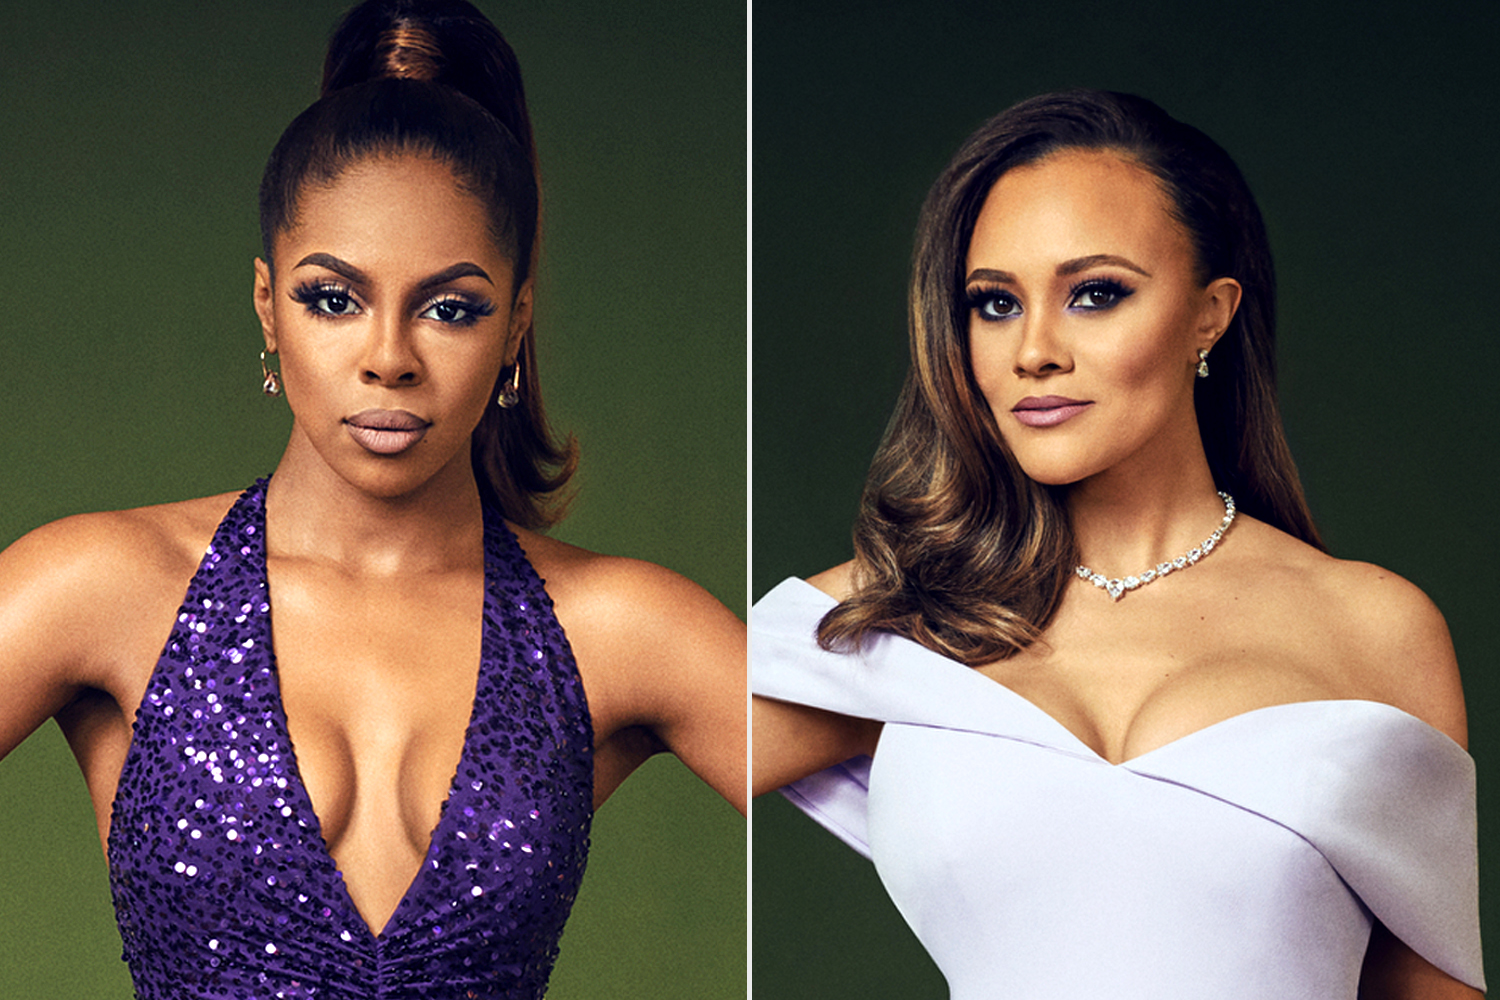 RHOP: การต่อสู้ระหว่าง Candiace Dillard และ Ashley Darby's Husbands Break Out at Holiday Party